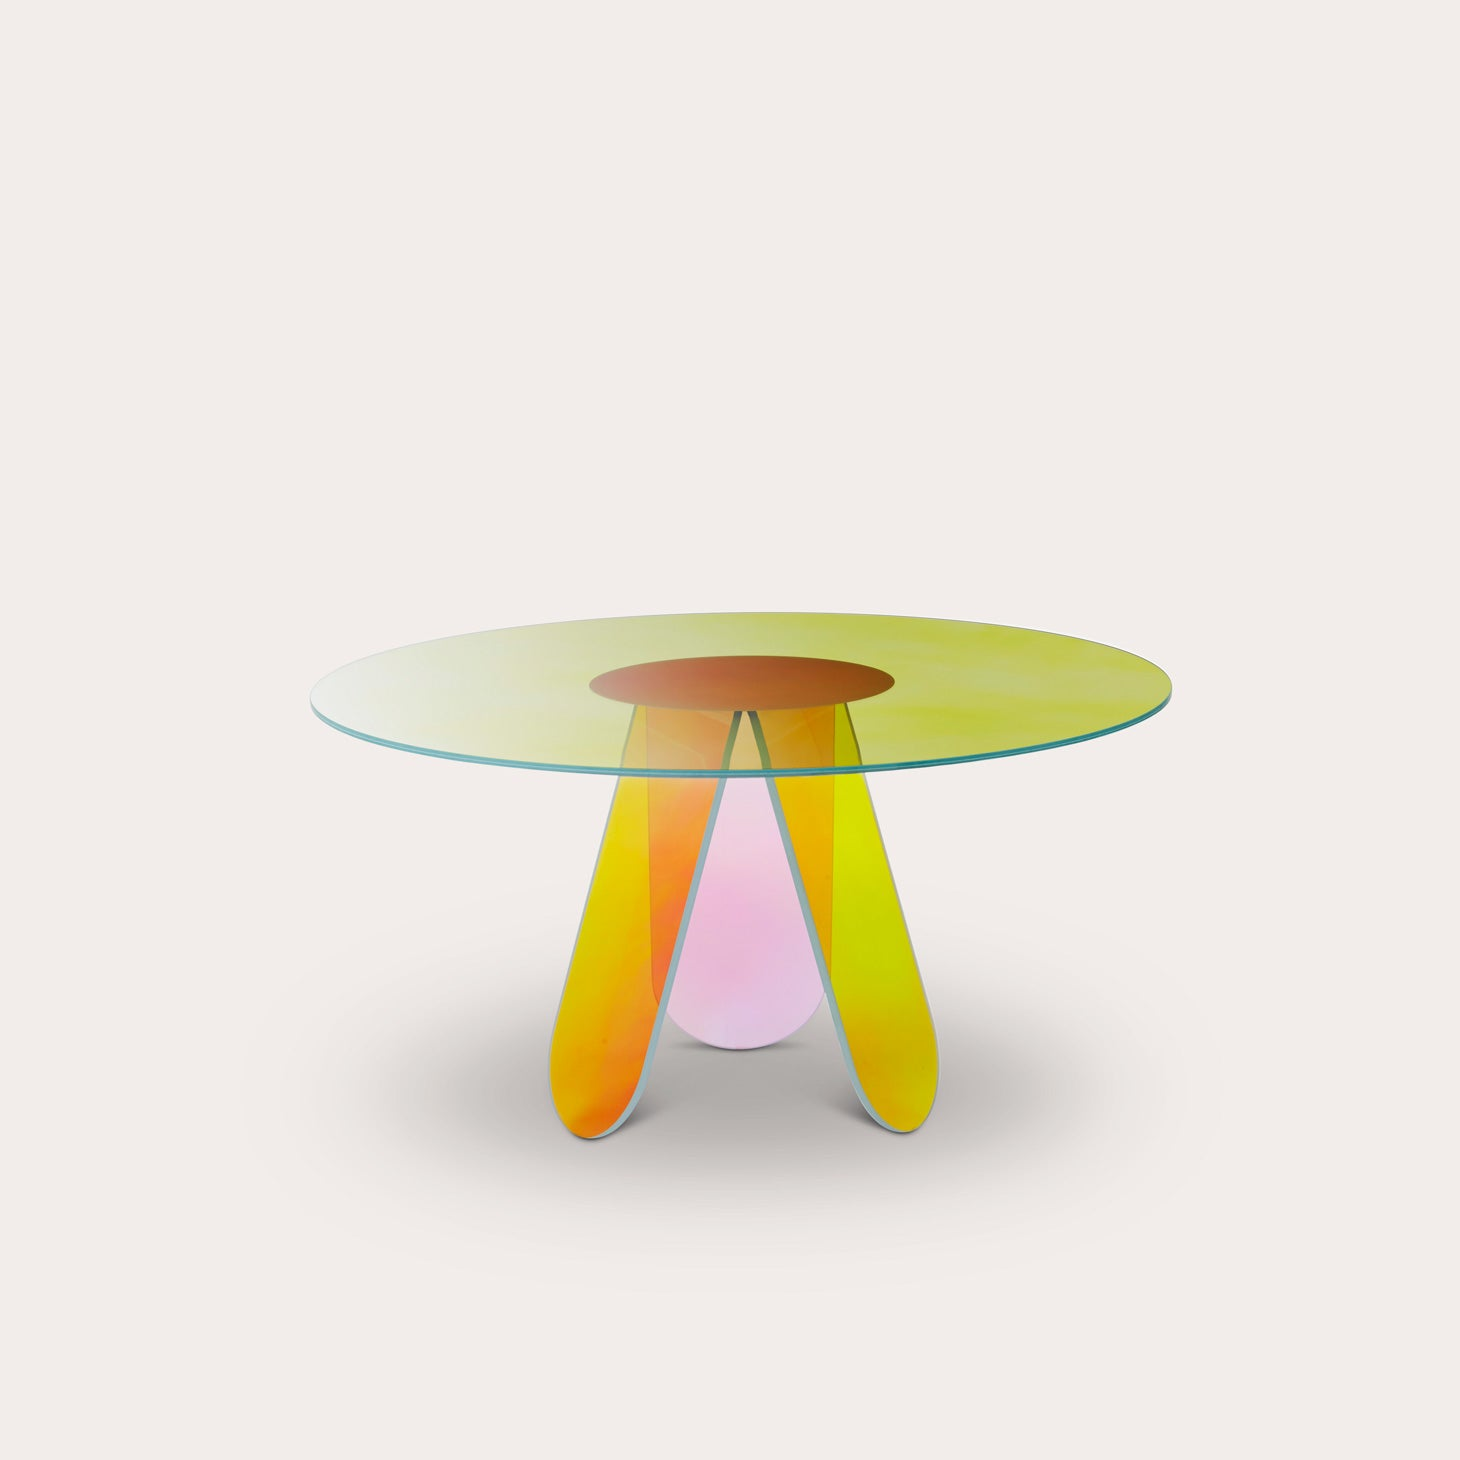 Shimmer Round Dining Table Tables Patricia Urquiola Designer Furniture Sku: 288-230-10266